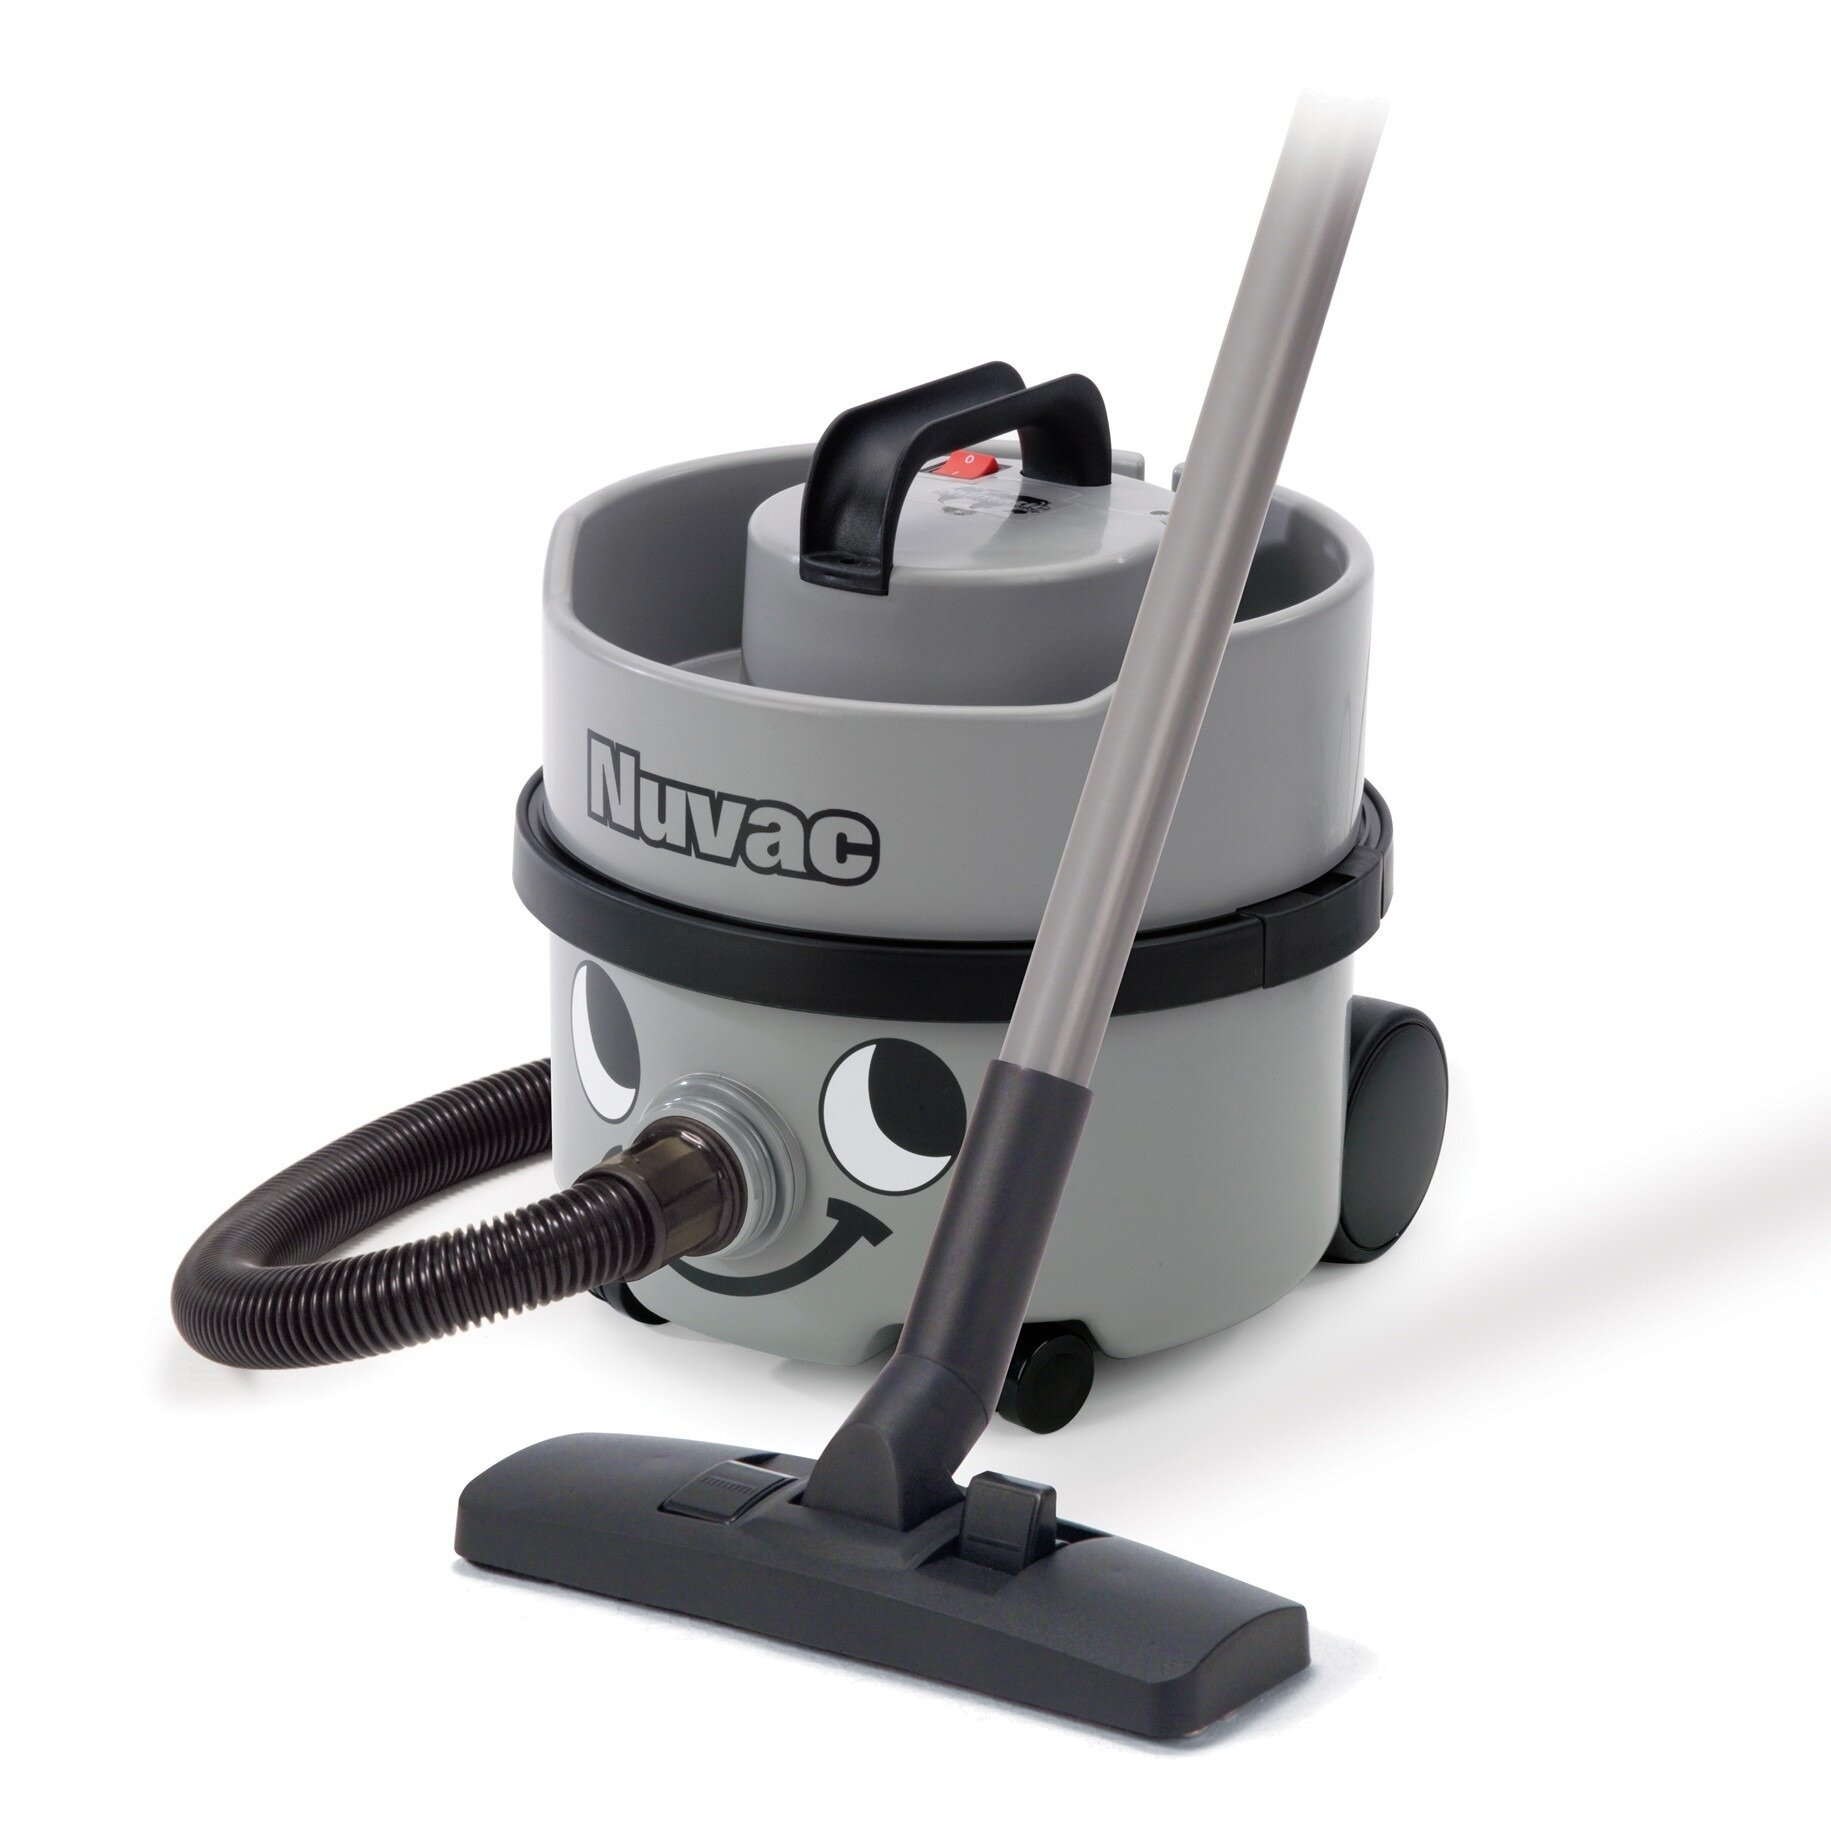 Numatic VNP180G Nuvac Canister Vacuum Cleaner - Grey